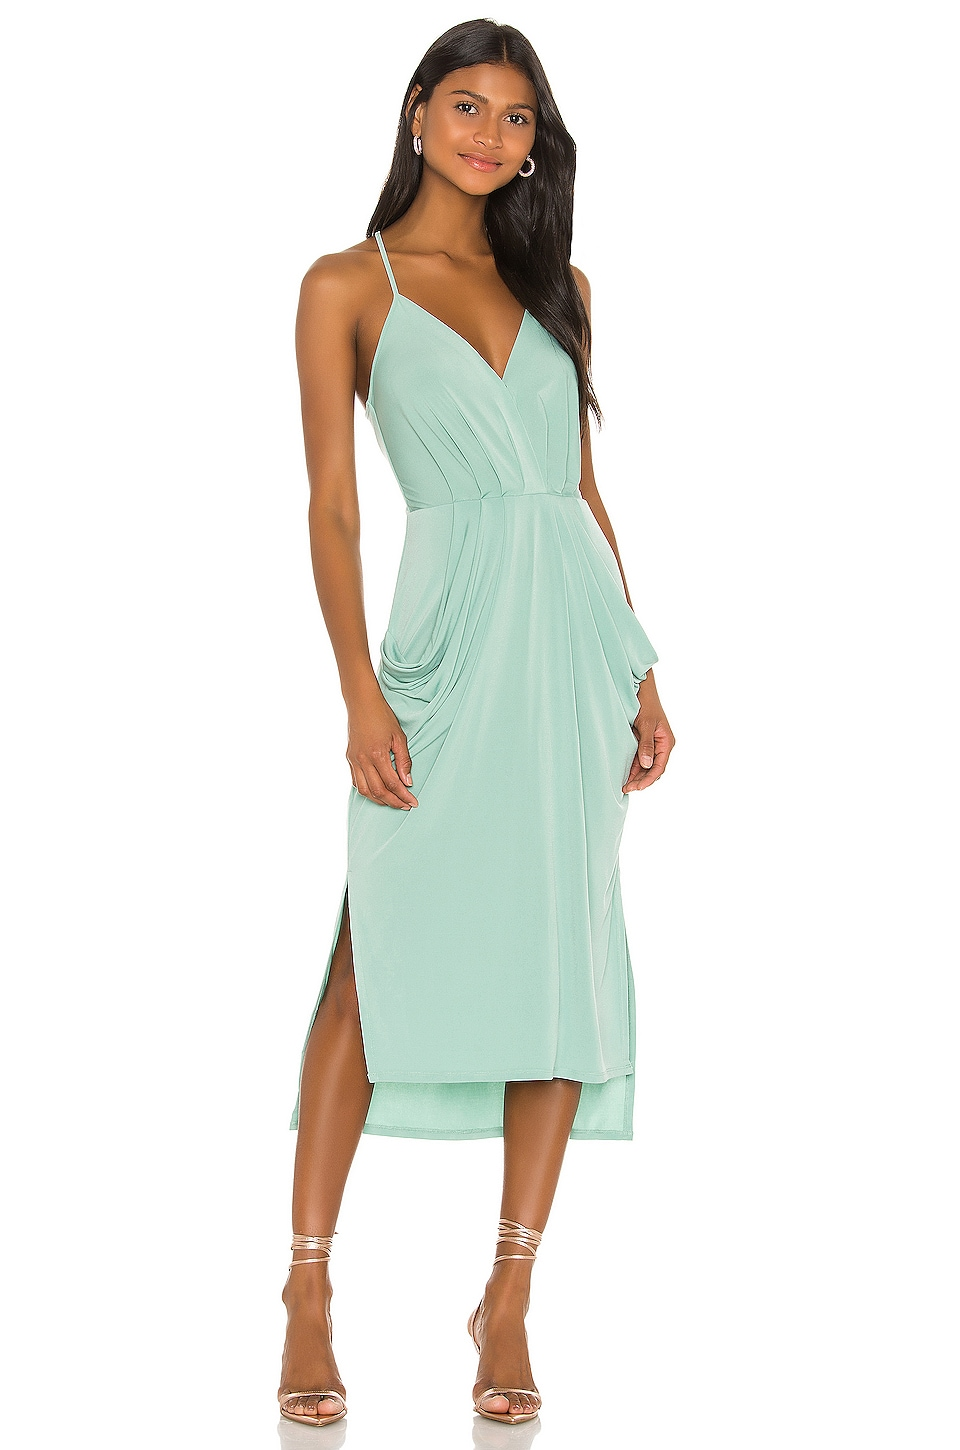 Faux Wrap Midi Dress             BCBGeneration                                                                                                                                         Sale price:                                                                       CA$ 51.34                                                                  Previous price:                                                                       CA$ 105.38 7